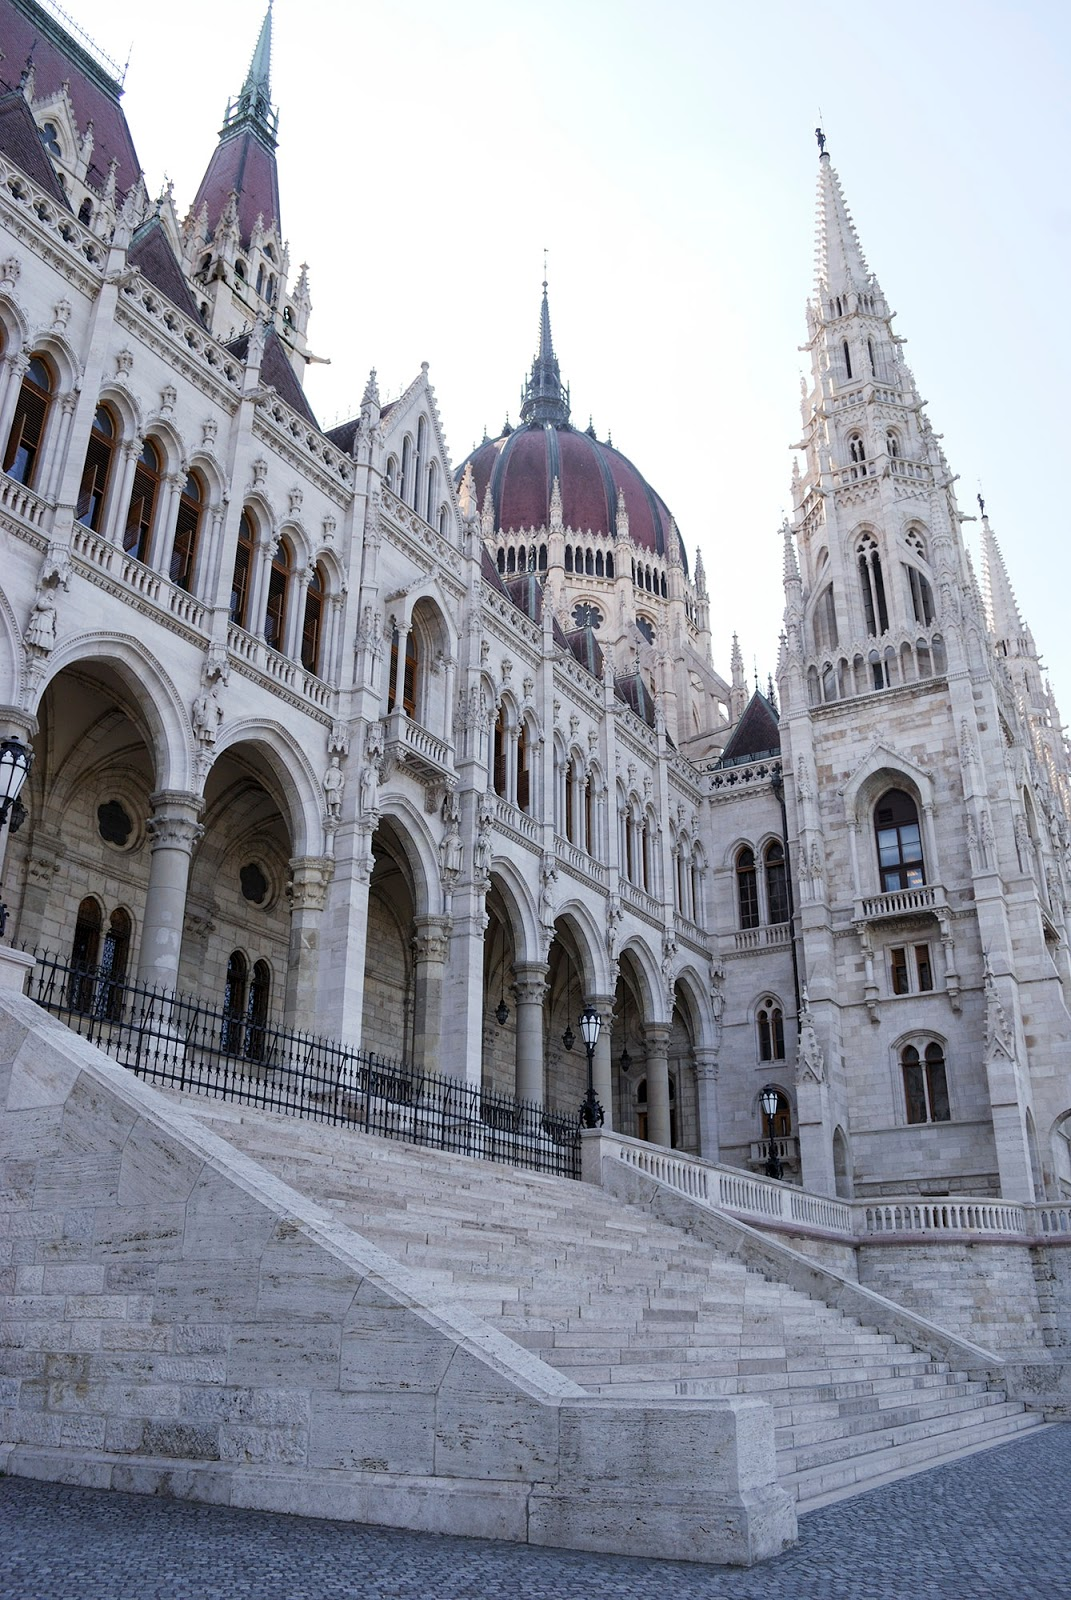 budapest instagrammable instagram worthy spot photography parliament building